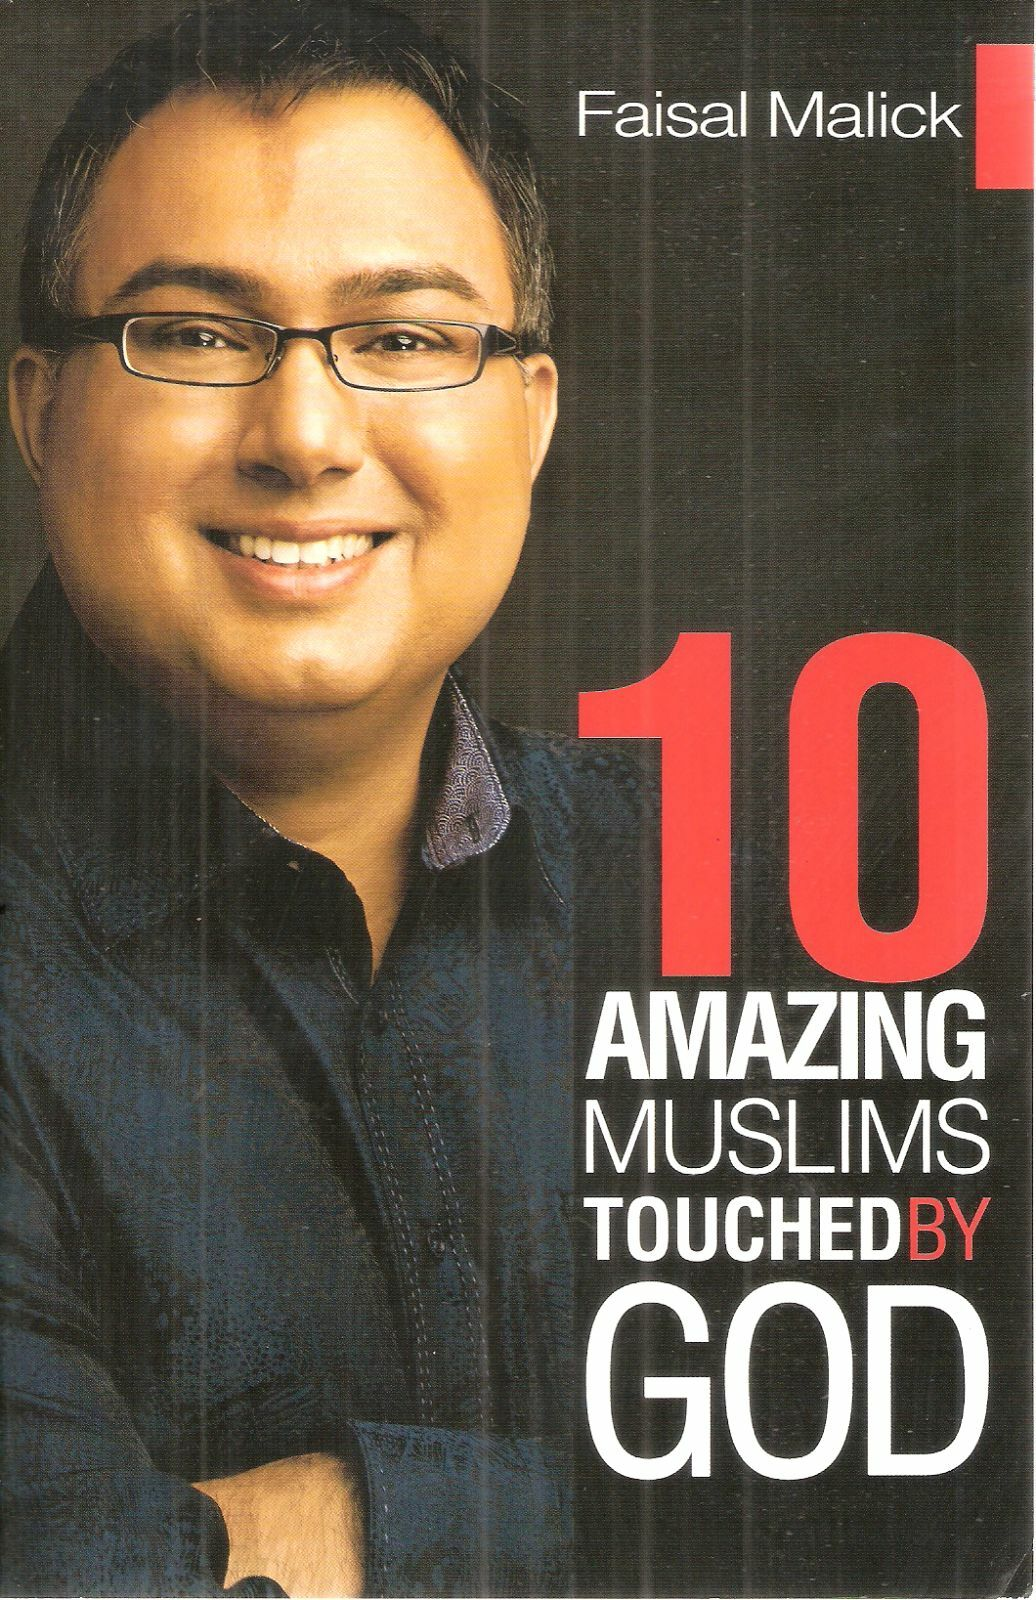 10 amazing muslims touched by god islam by faisal malick english book free ship